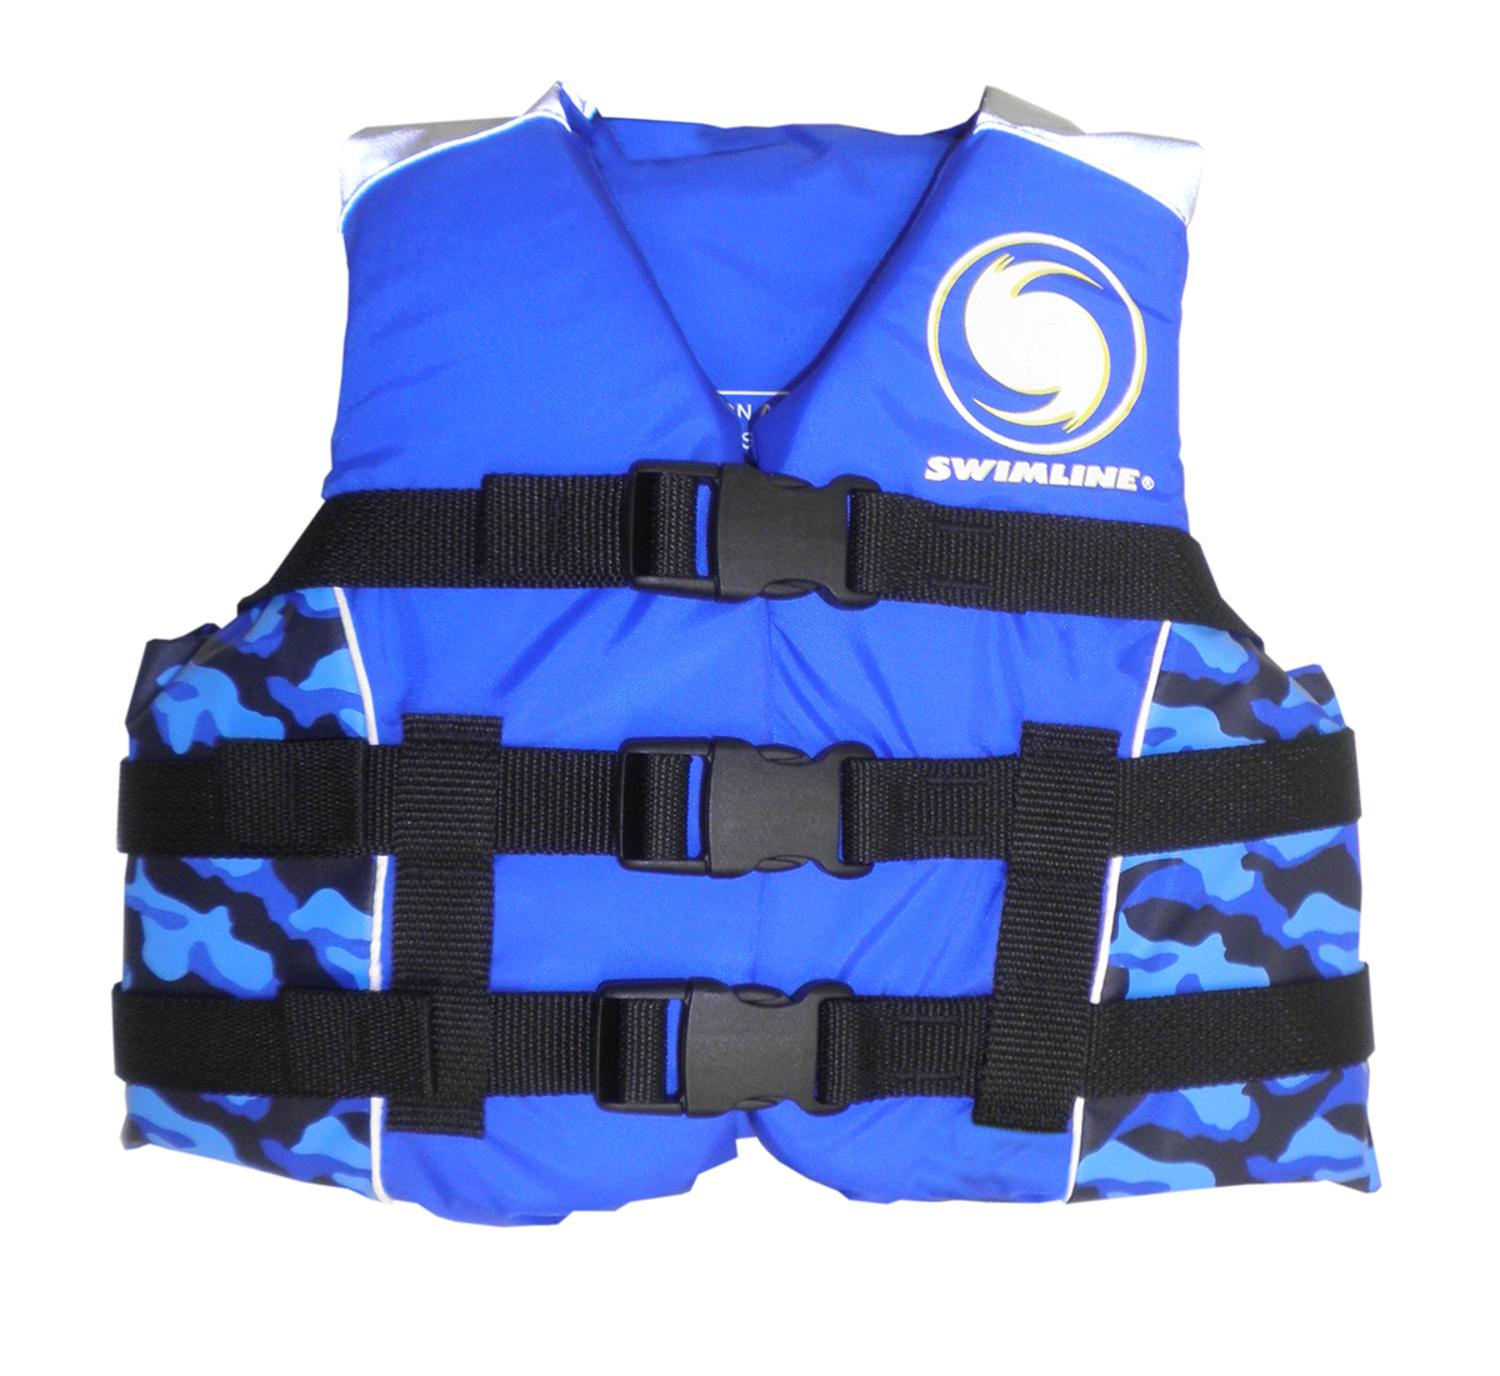 USCG Approved Water or Swimming Pool Cool in Blue Camouflage Child Life Vest for Boys - Up to 90lbs